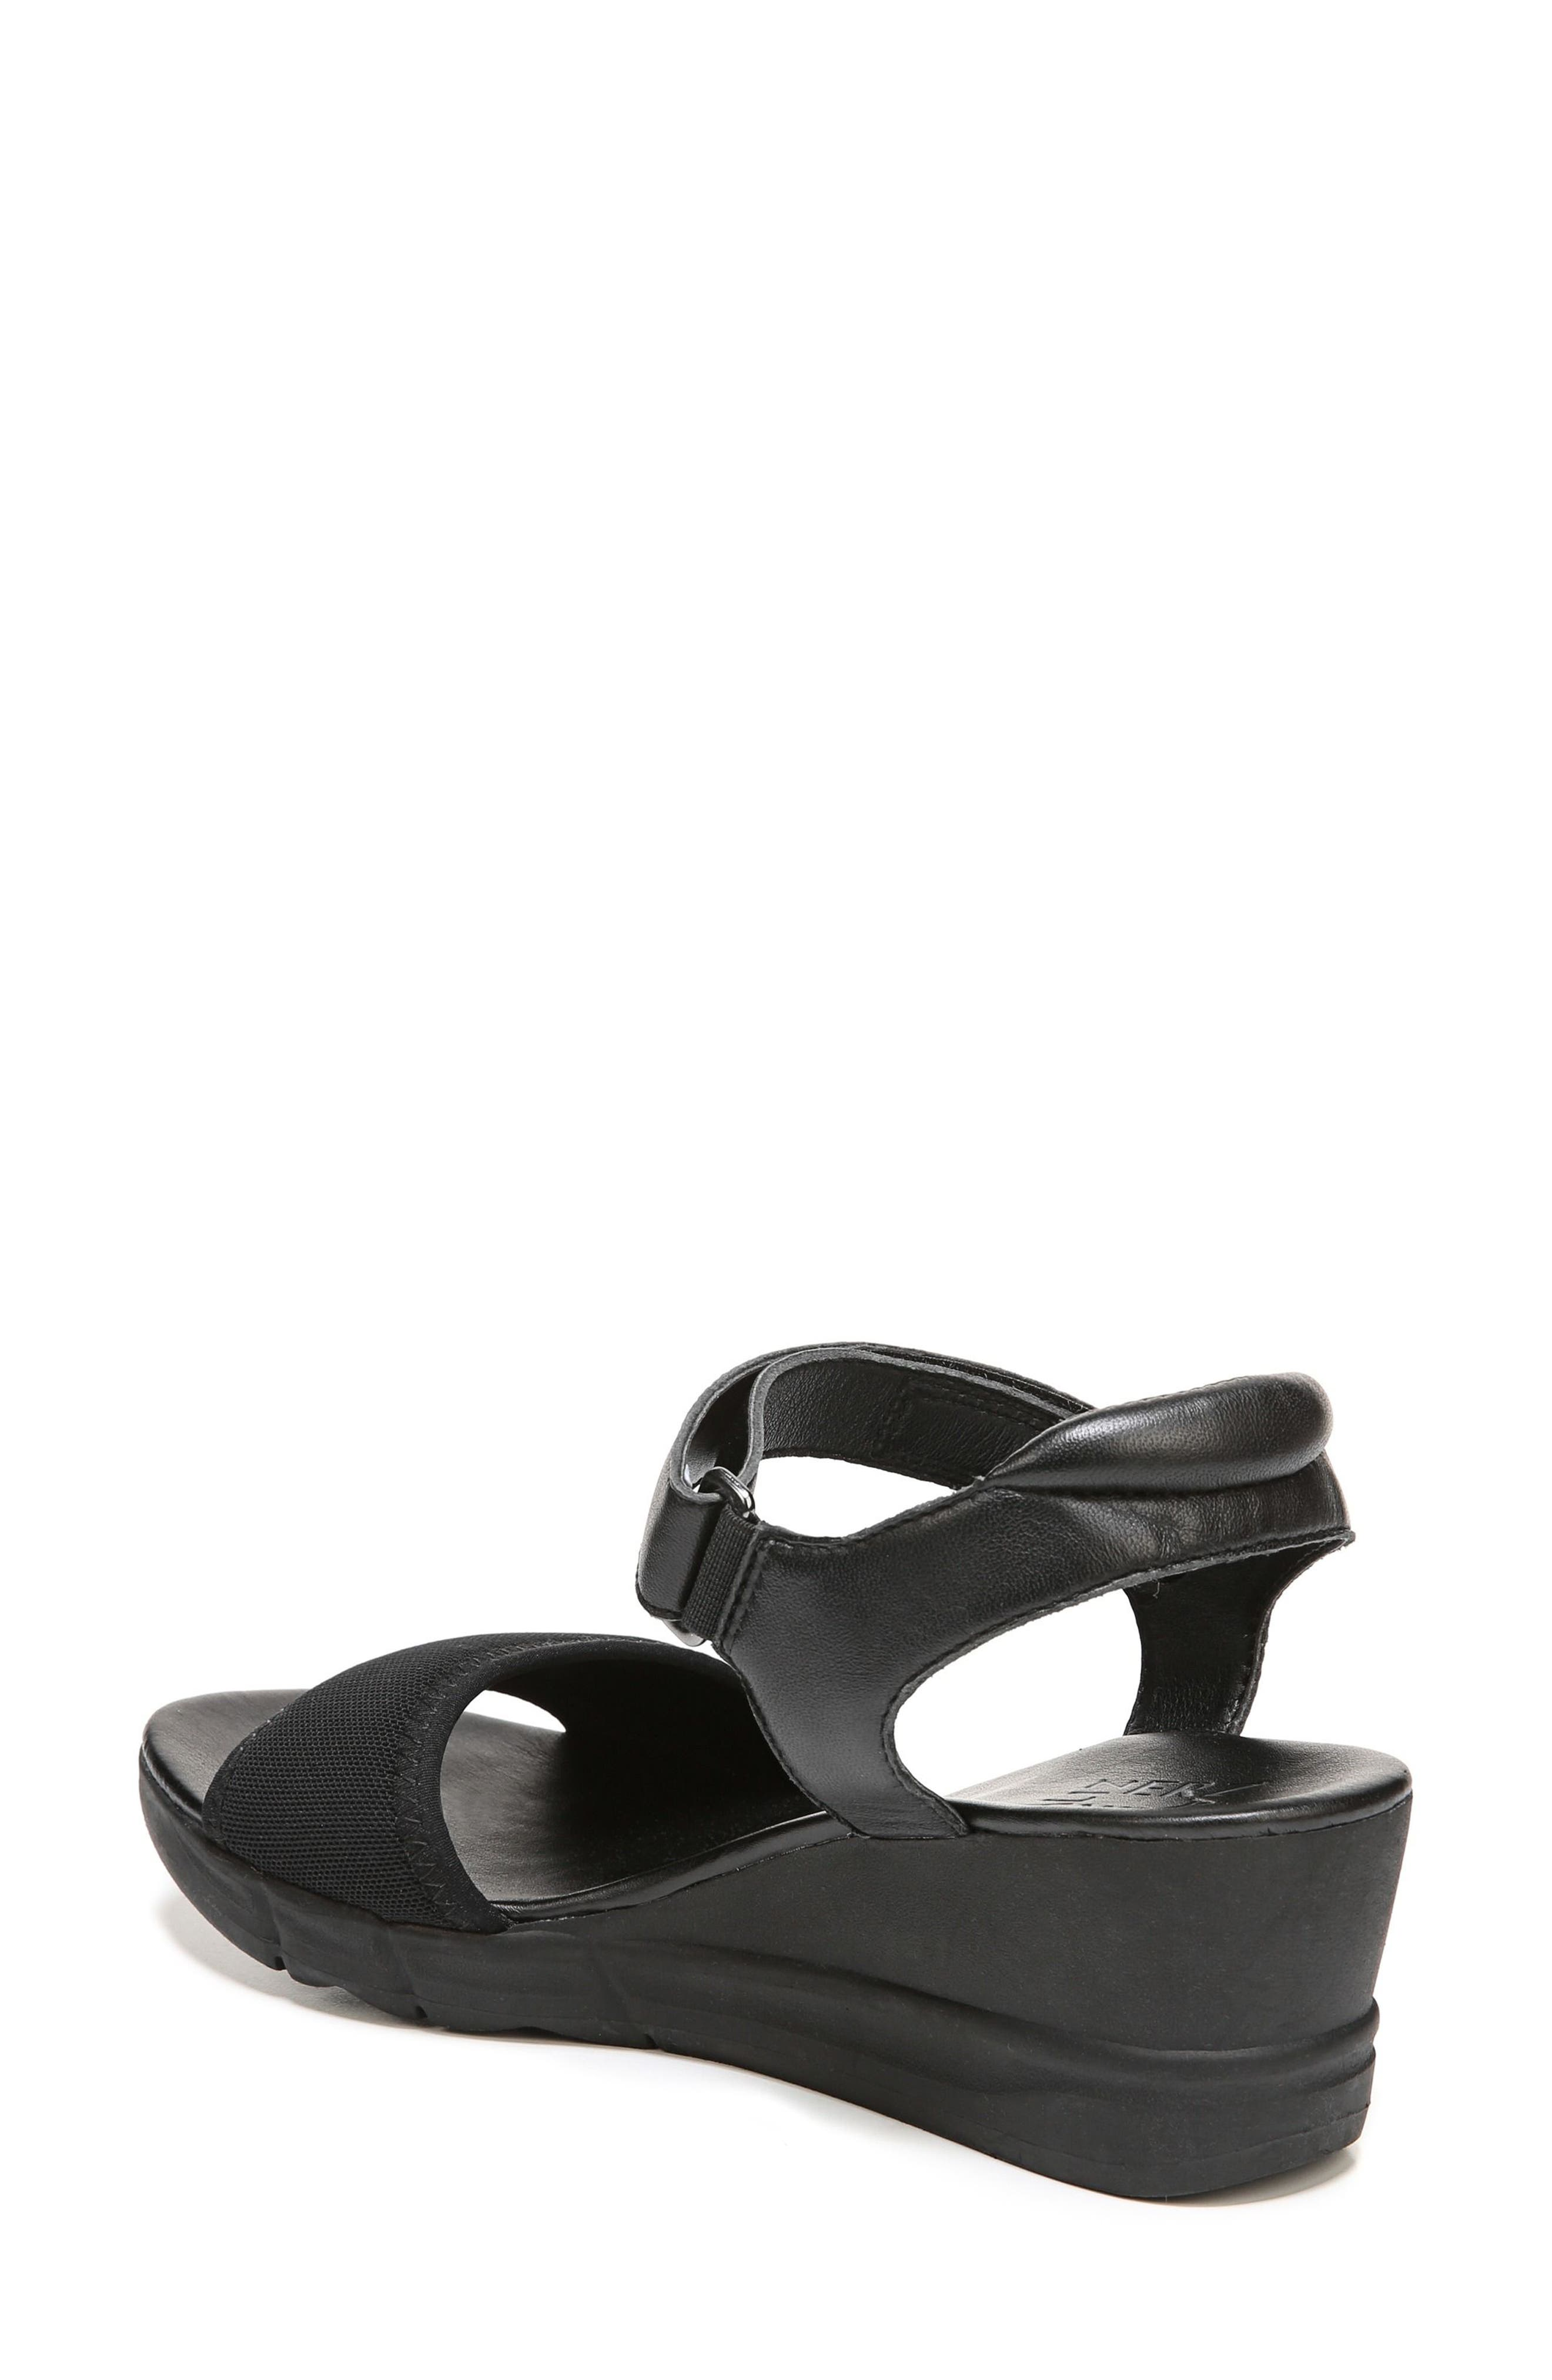 Irena Wedge Sandal,                             Alternate thumbnail 2, color,                             Black Leather